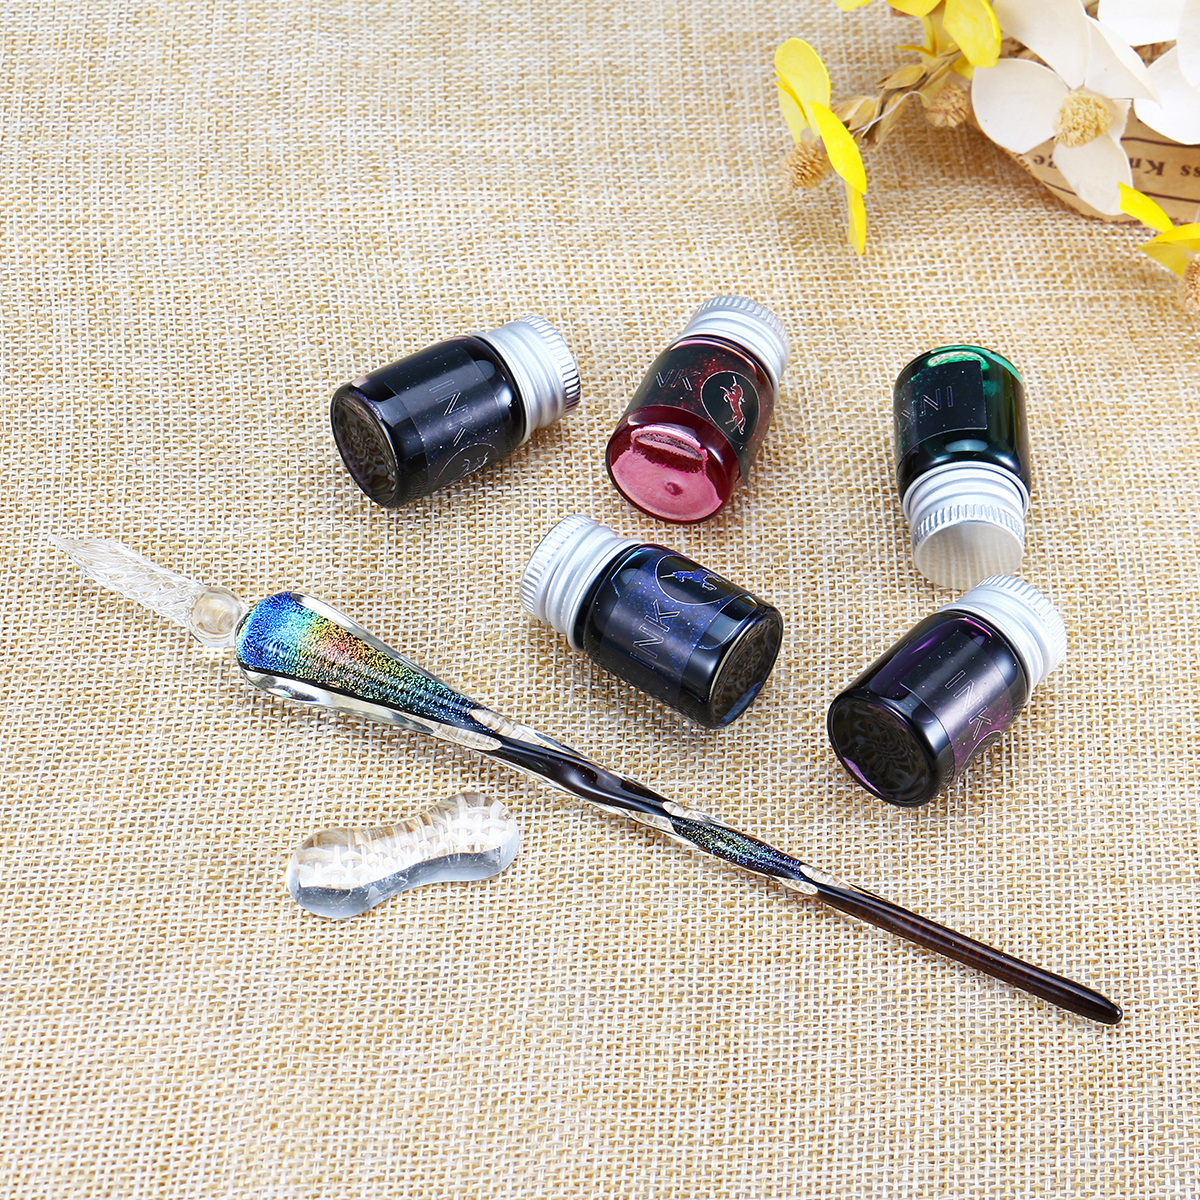 Crystal Glass Dip Pen Ink Set Signature Pen Vintage Handmade Glass Sign Pen Writing Tools